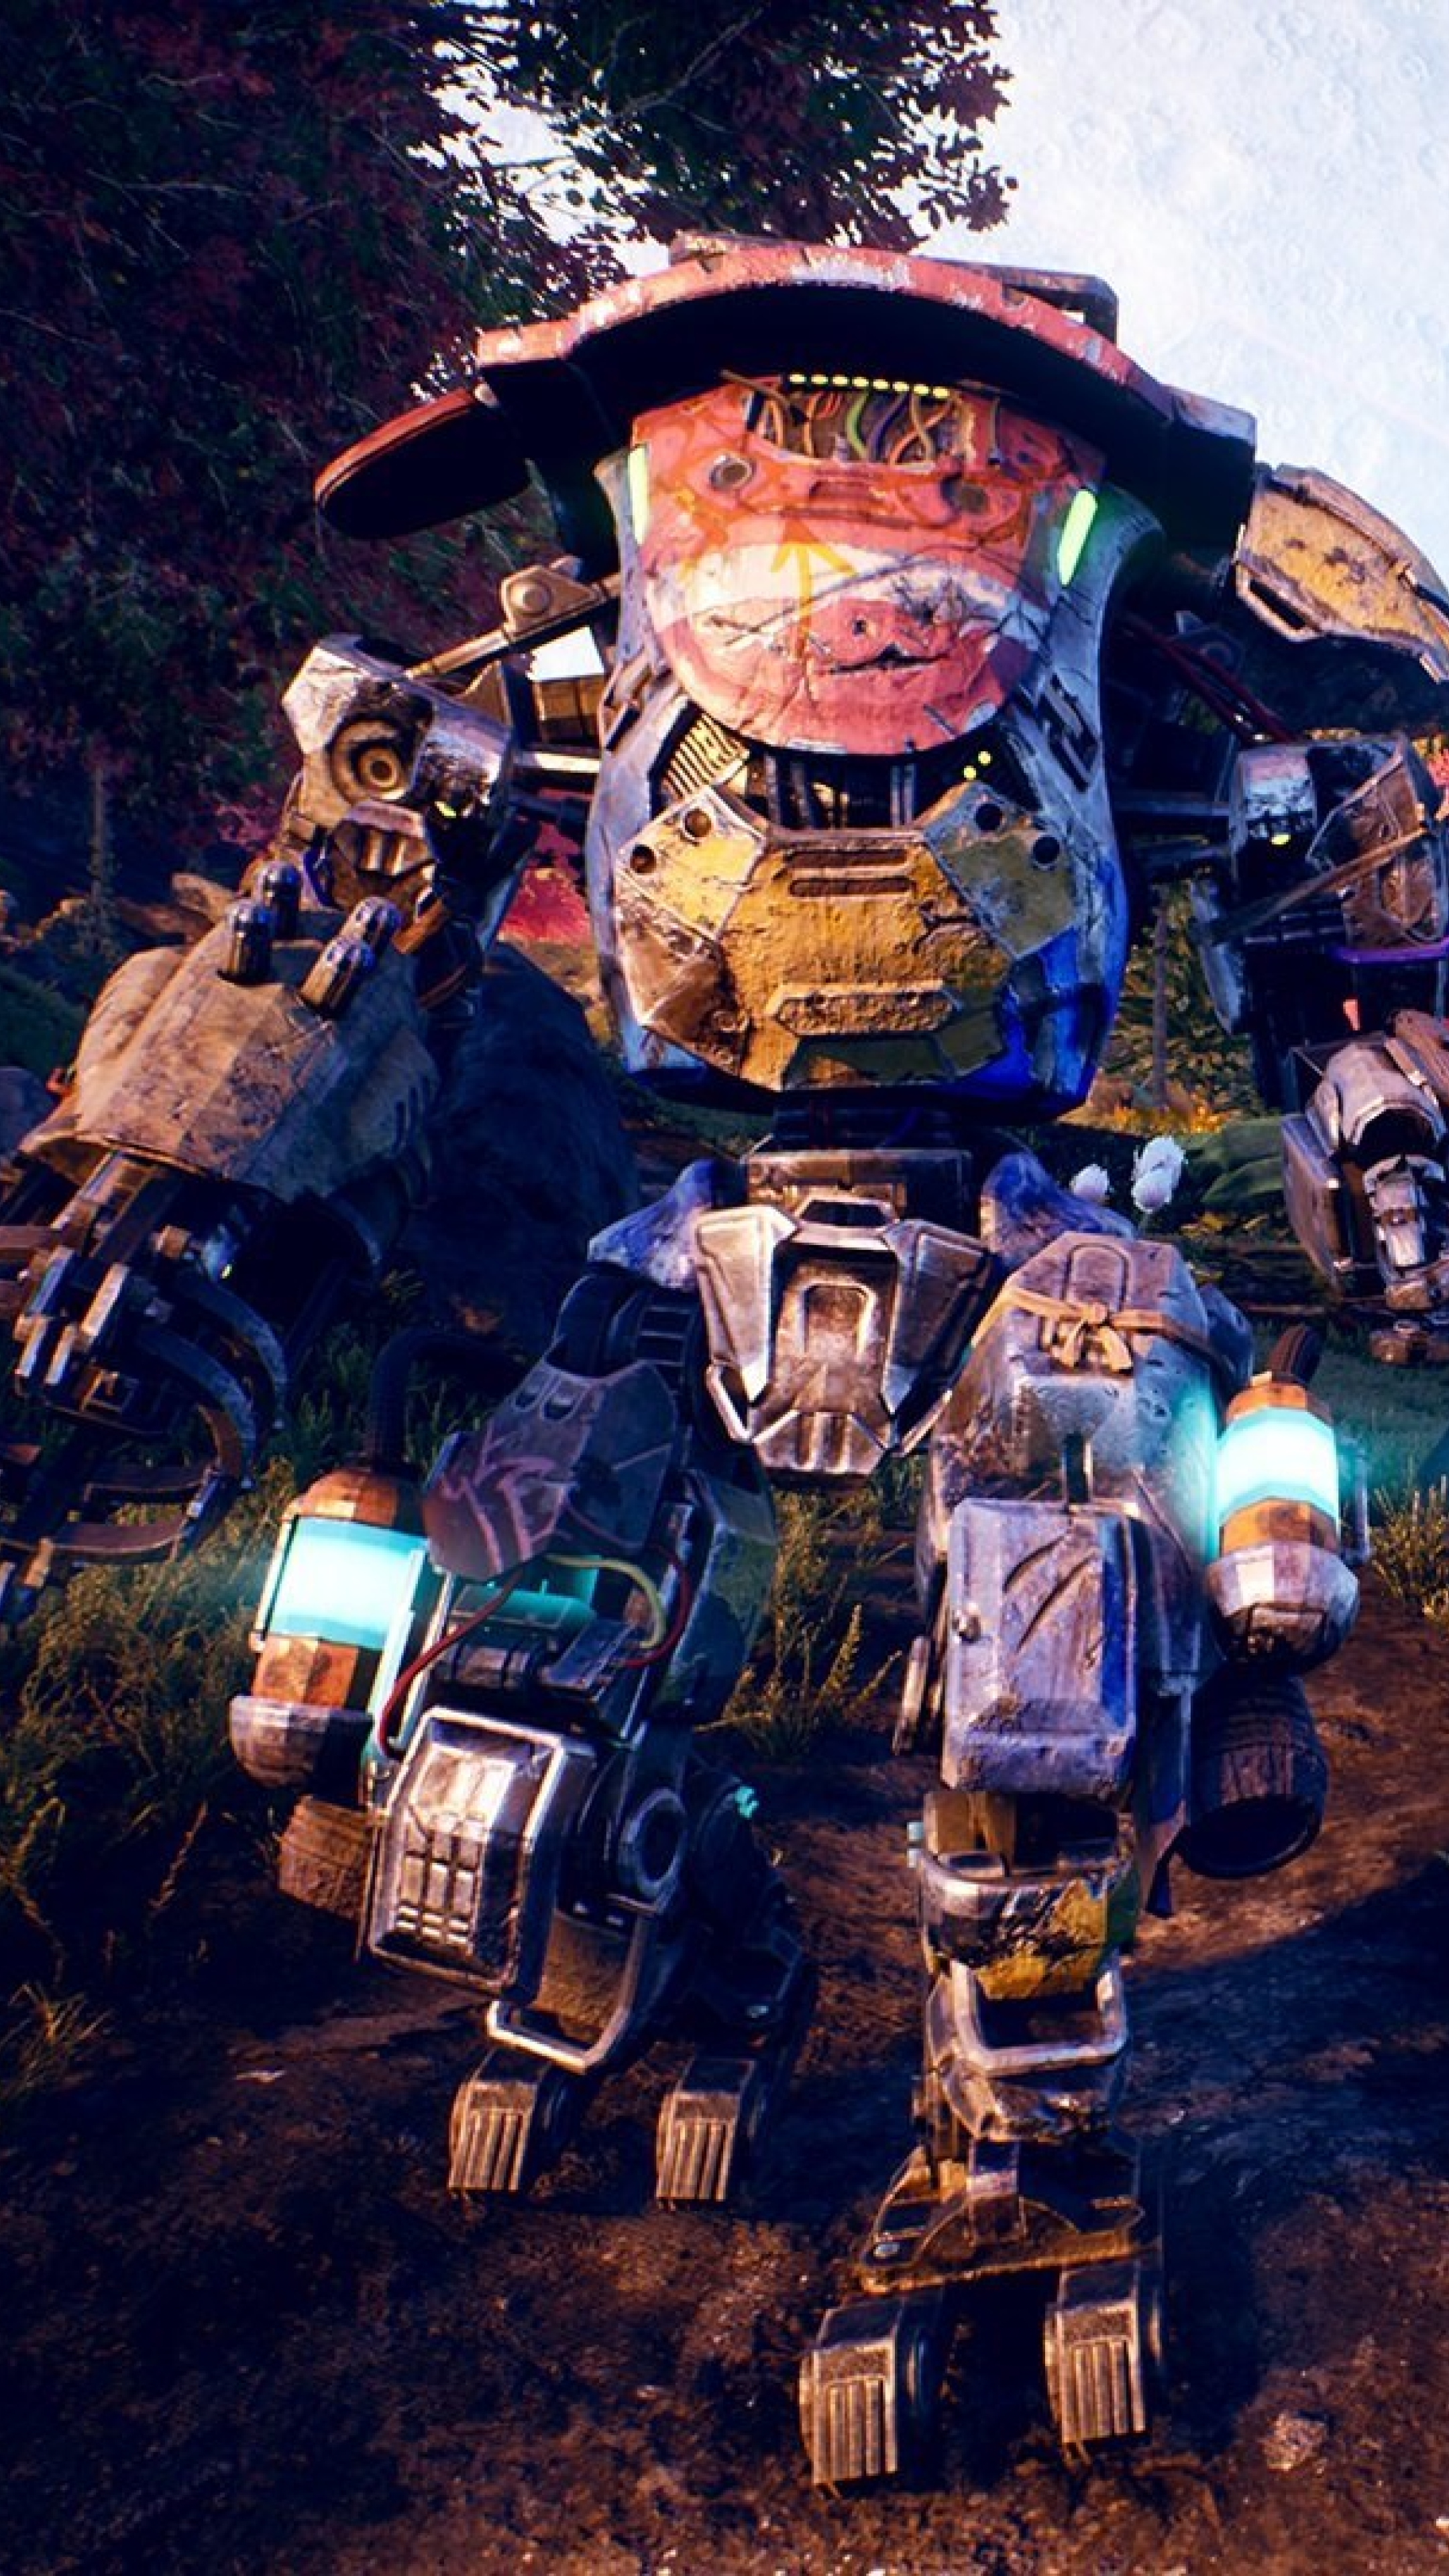 2160x3840 The Outer Worlds Game Sony Xperia X,XZ,Z5 ...